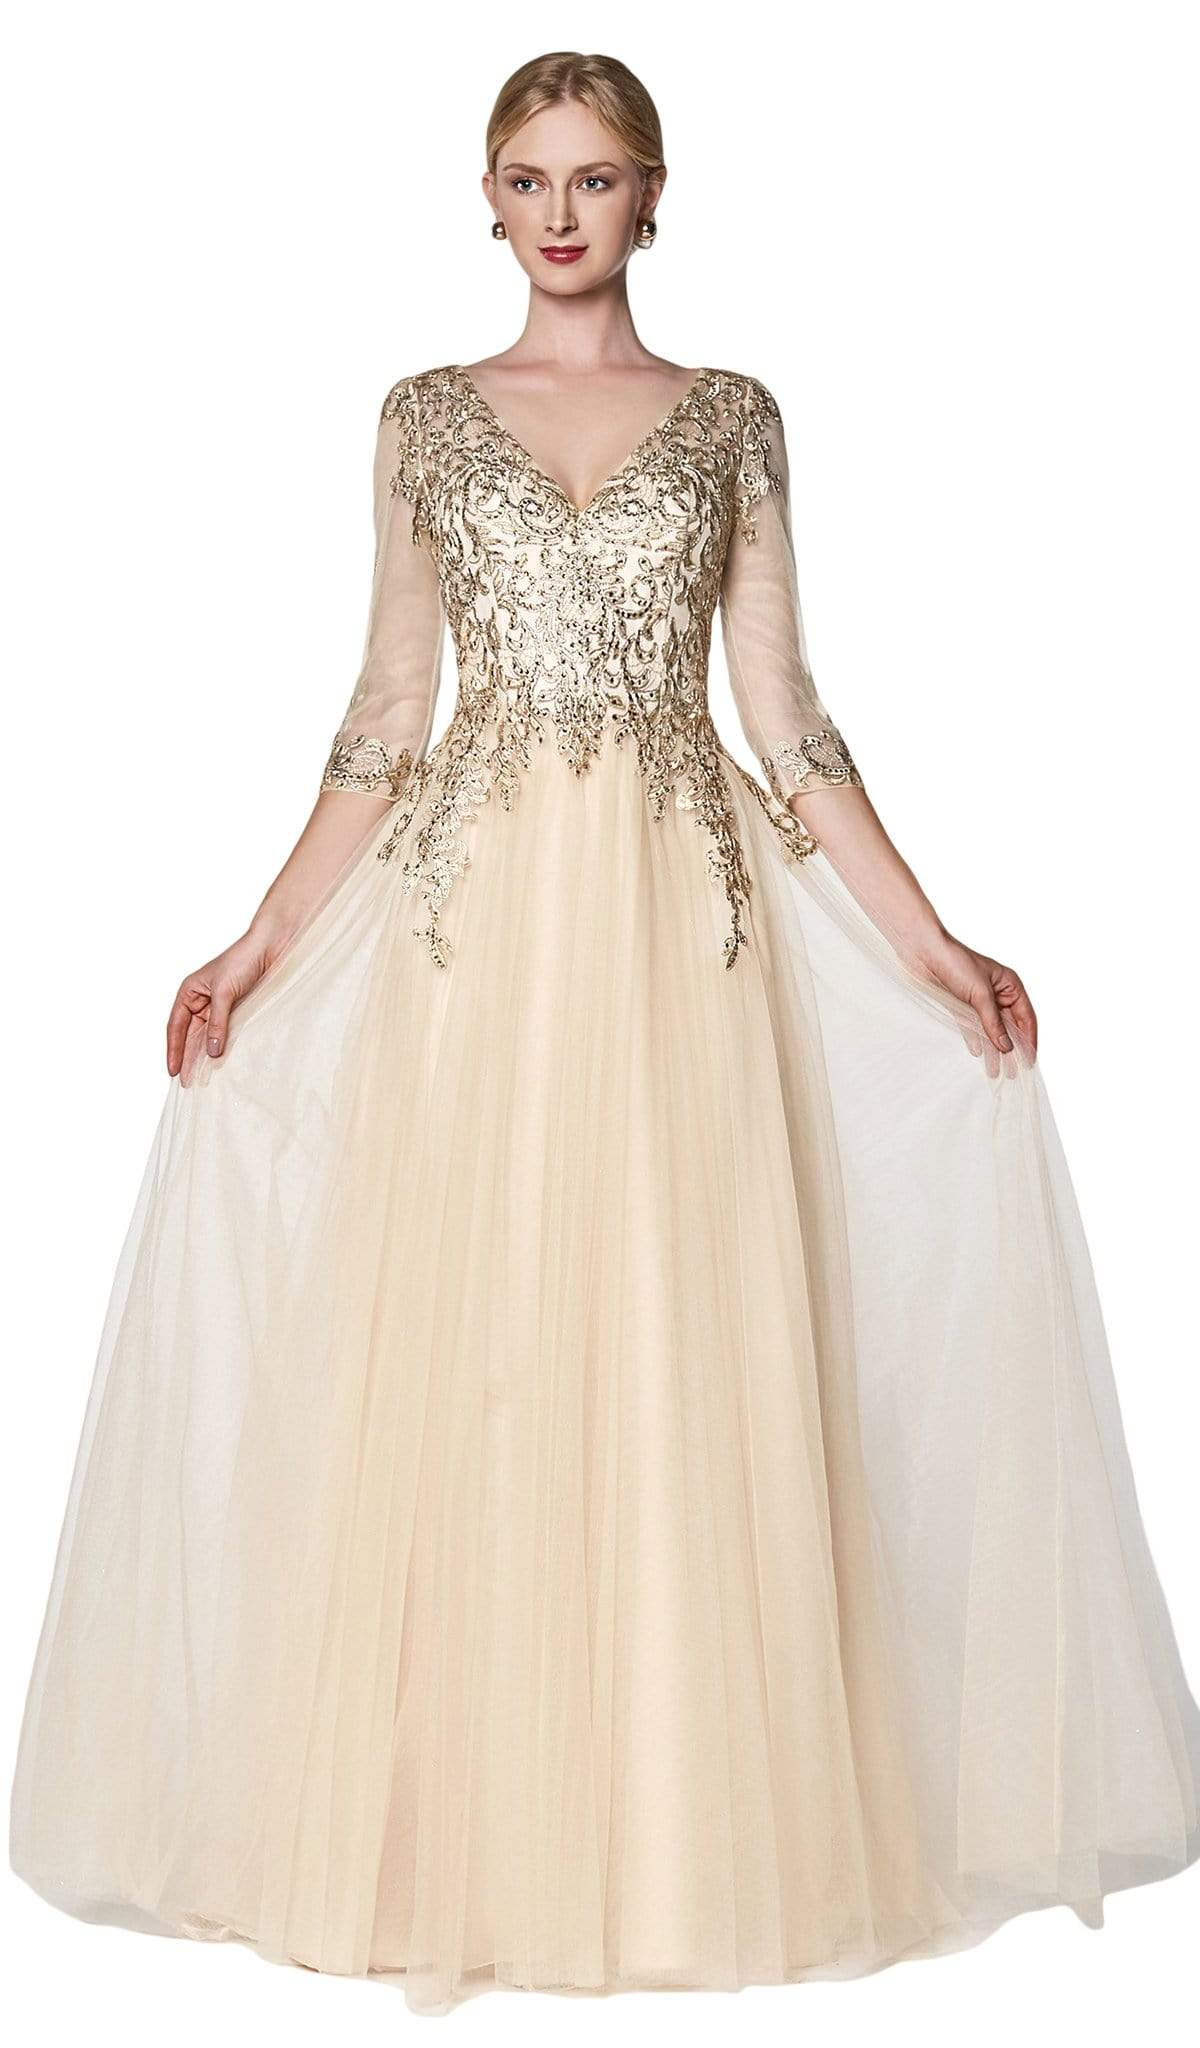 Cinderella Divine - OC003 Beaded Lace V-Neck Evening Dress In Neutral